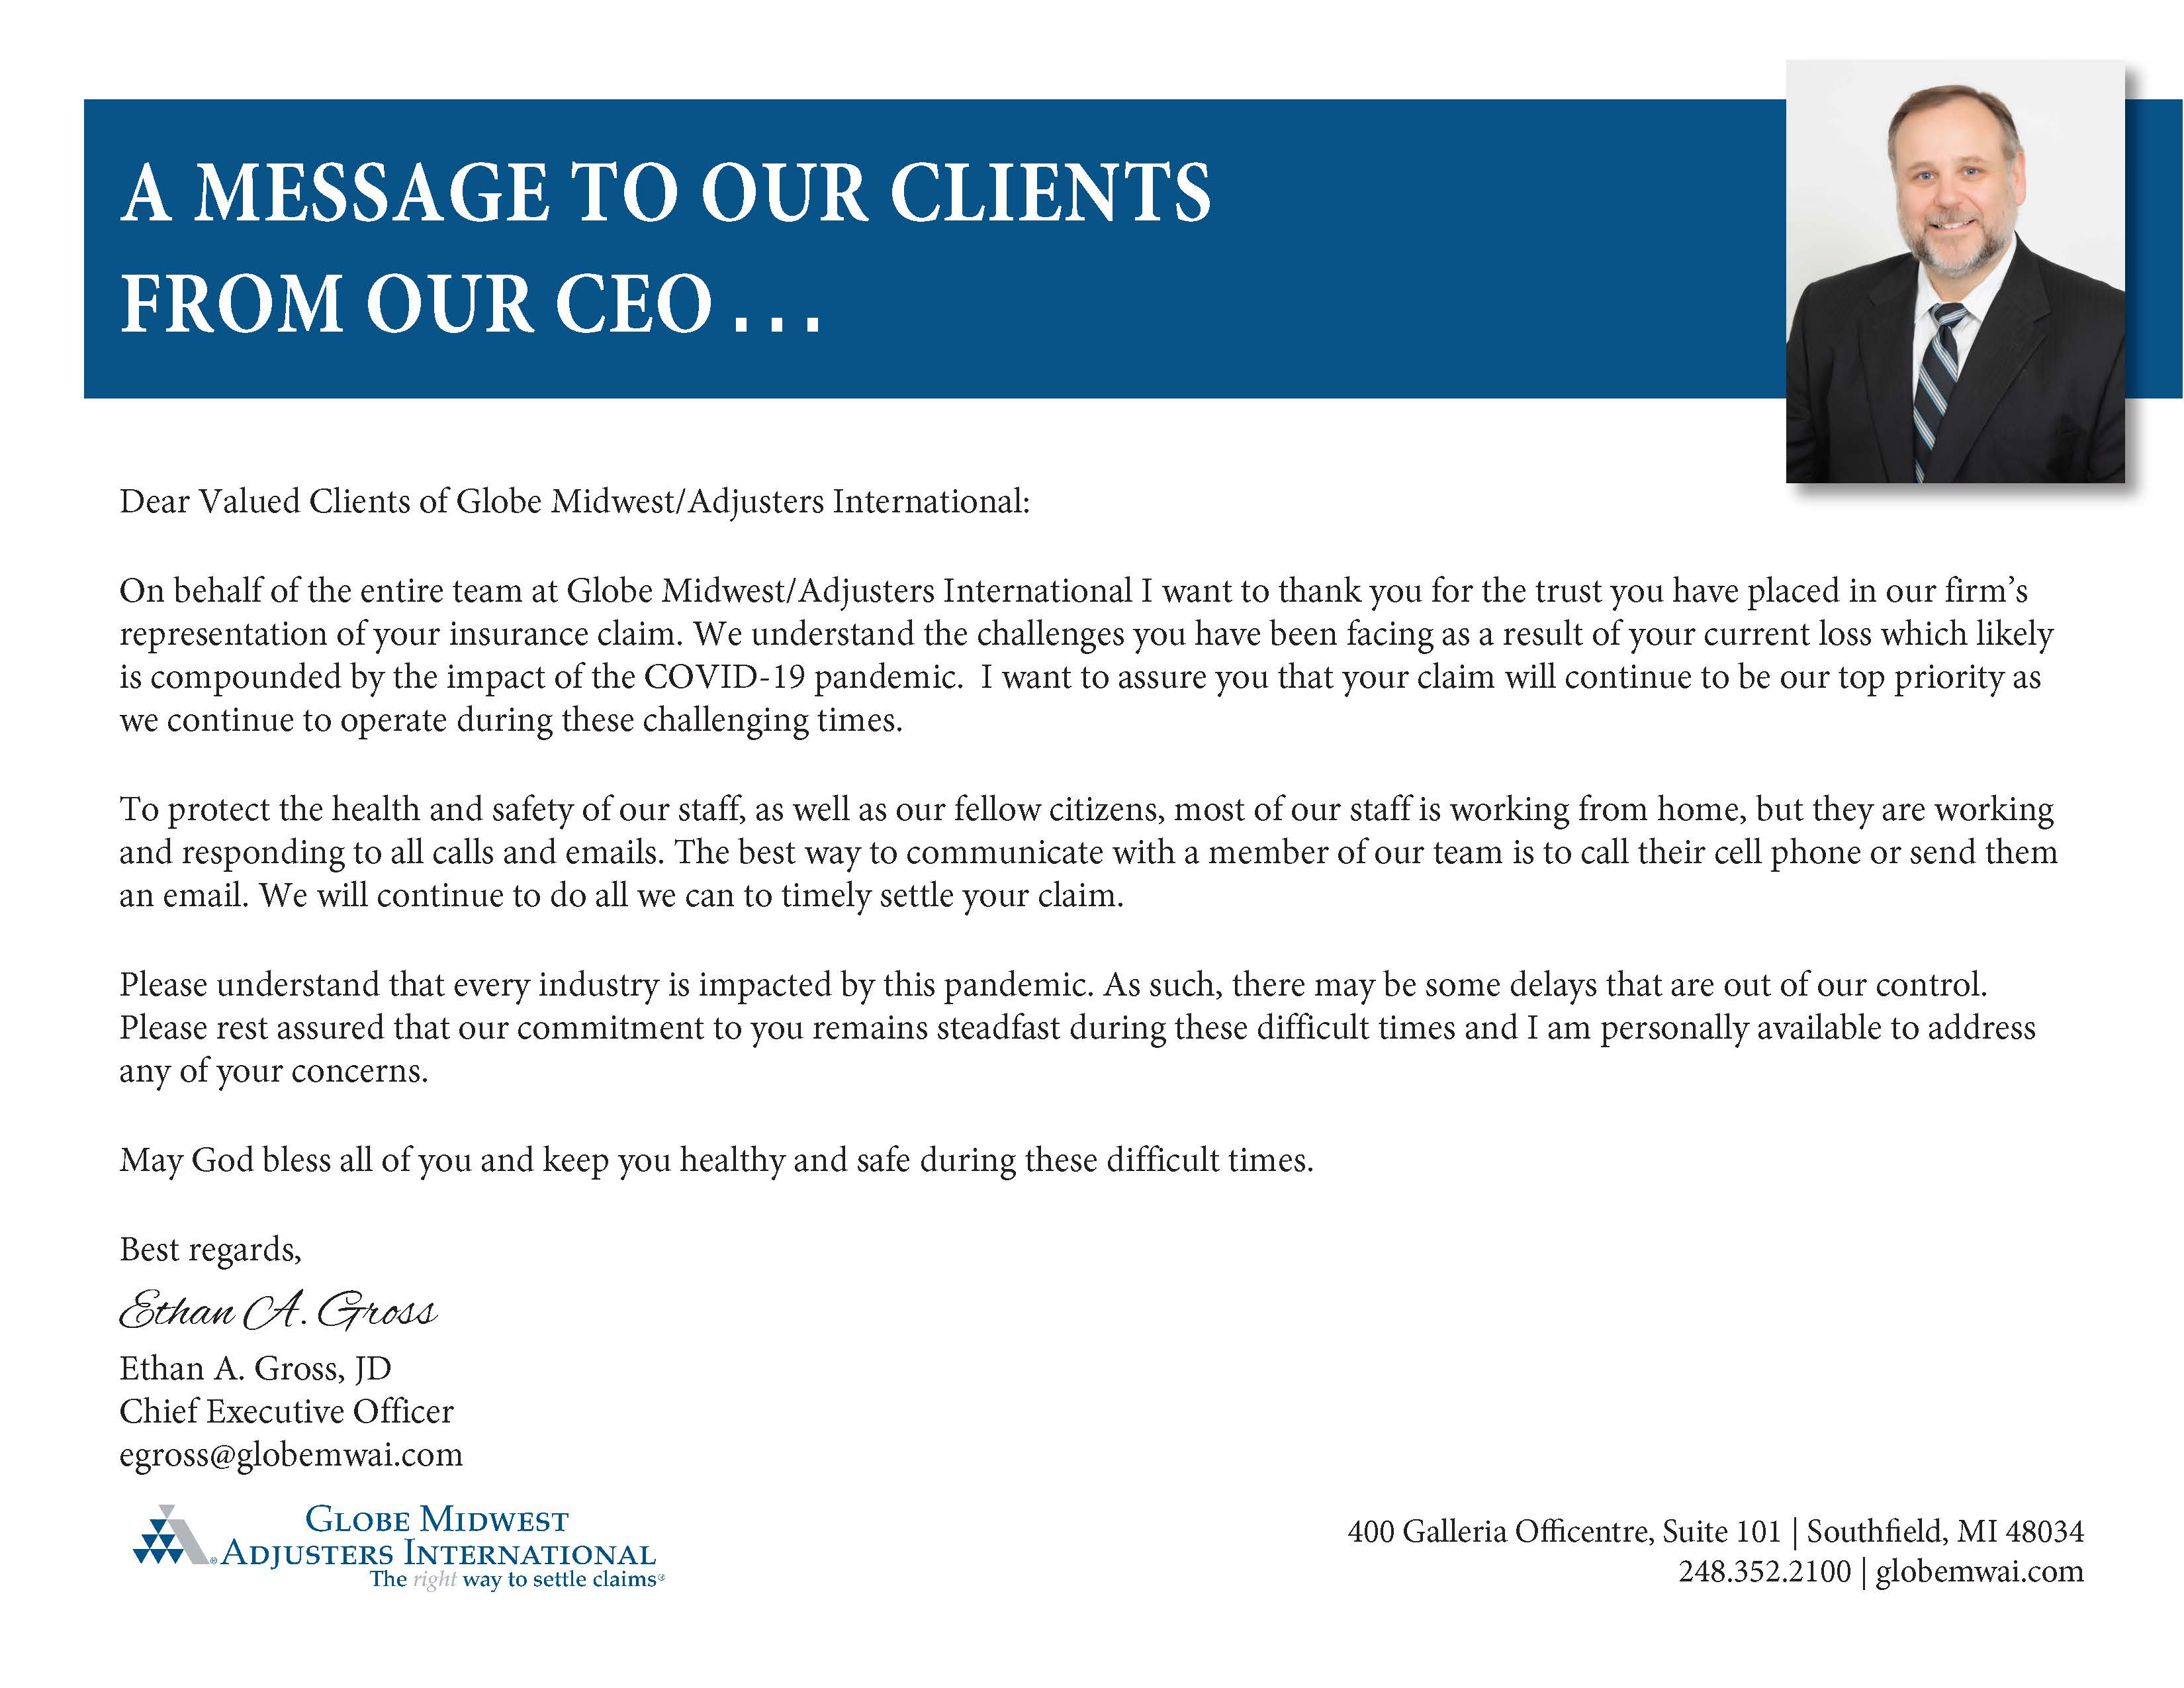 A Message to Our Clients from Our CEO